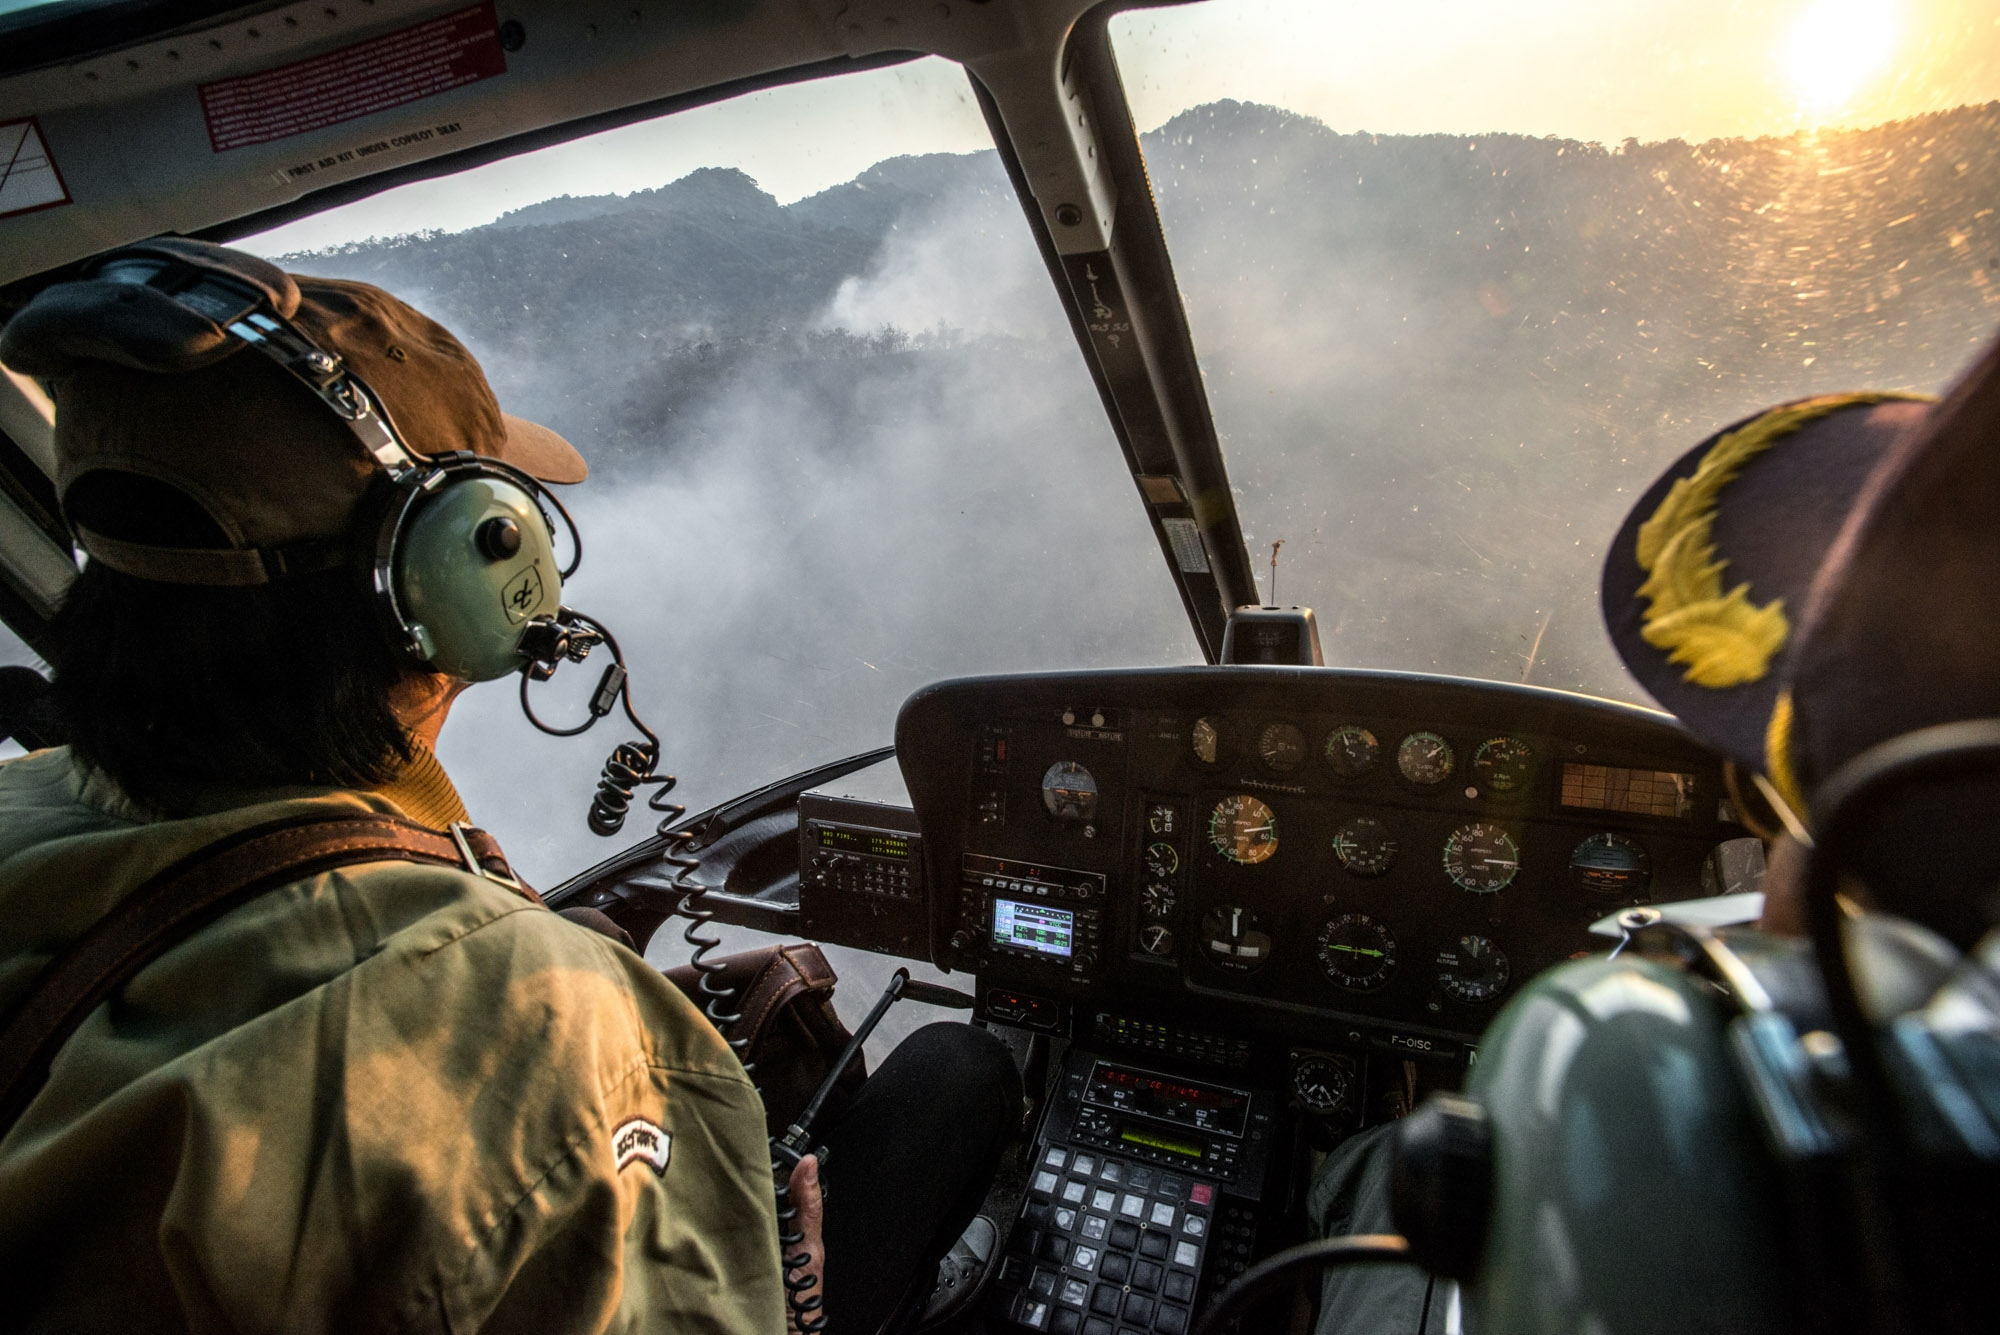 Aerial firefighting operation. The use of a helicopter to help report forest incidents for fire ground operation.